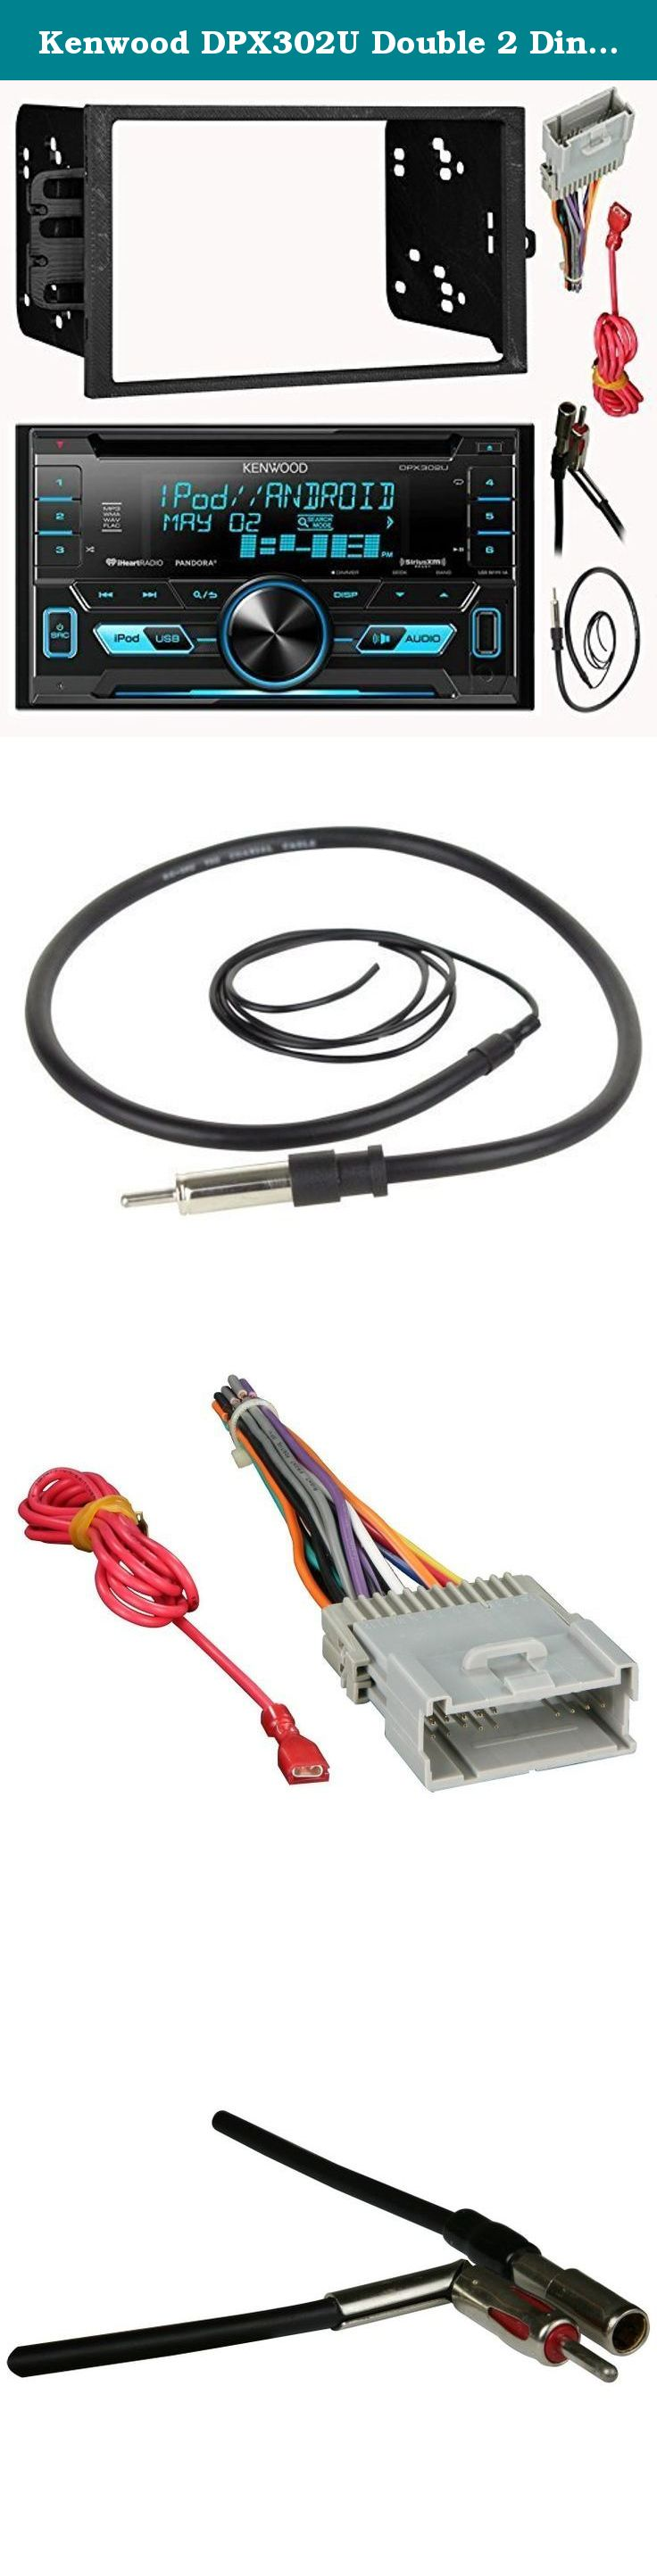 Kenwood Dpx302u Double 2 Din Cd Mp3 Car Stereo Receiver Bundle Combo Player Wiring Harness With Metra Installation Kit